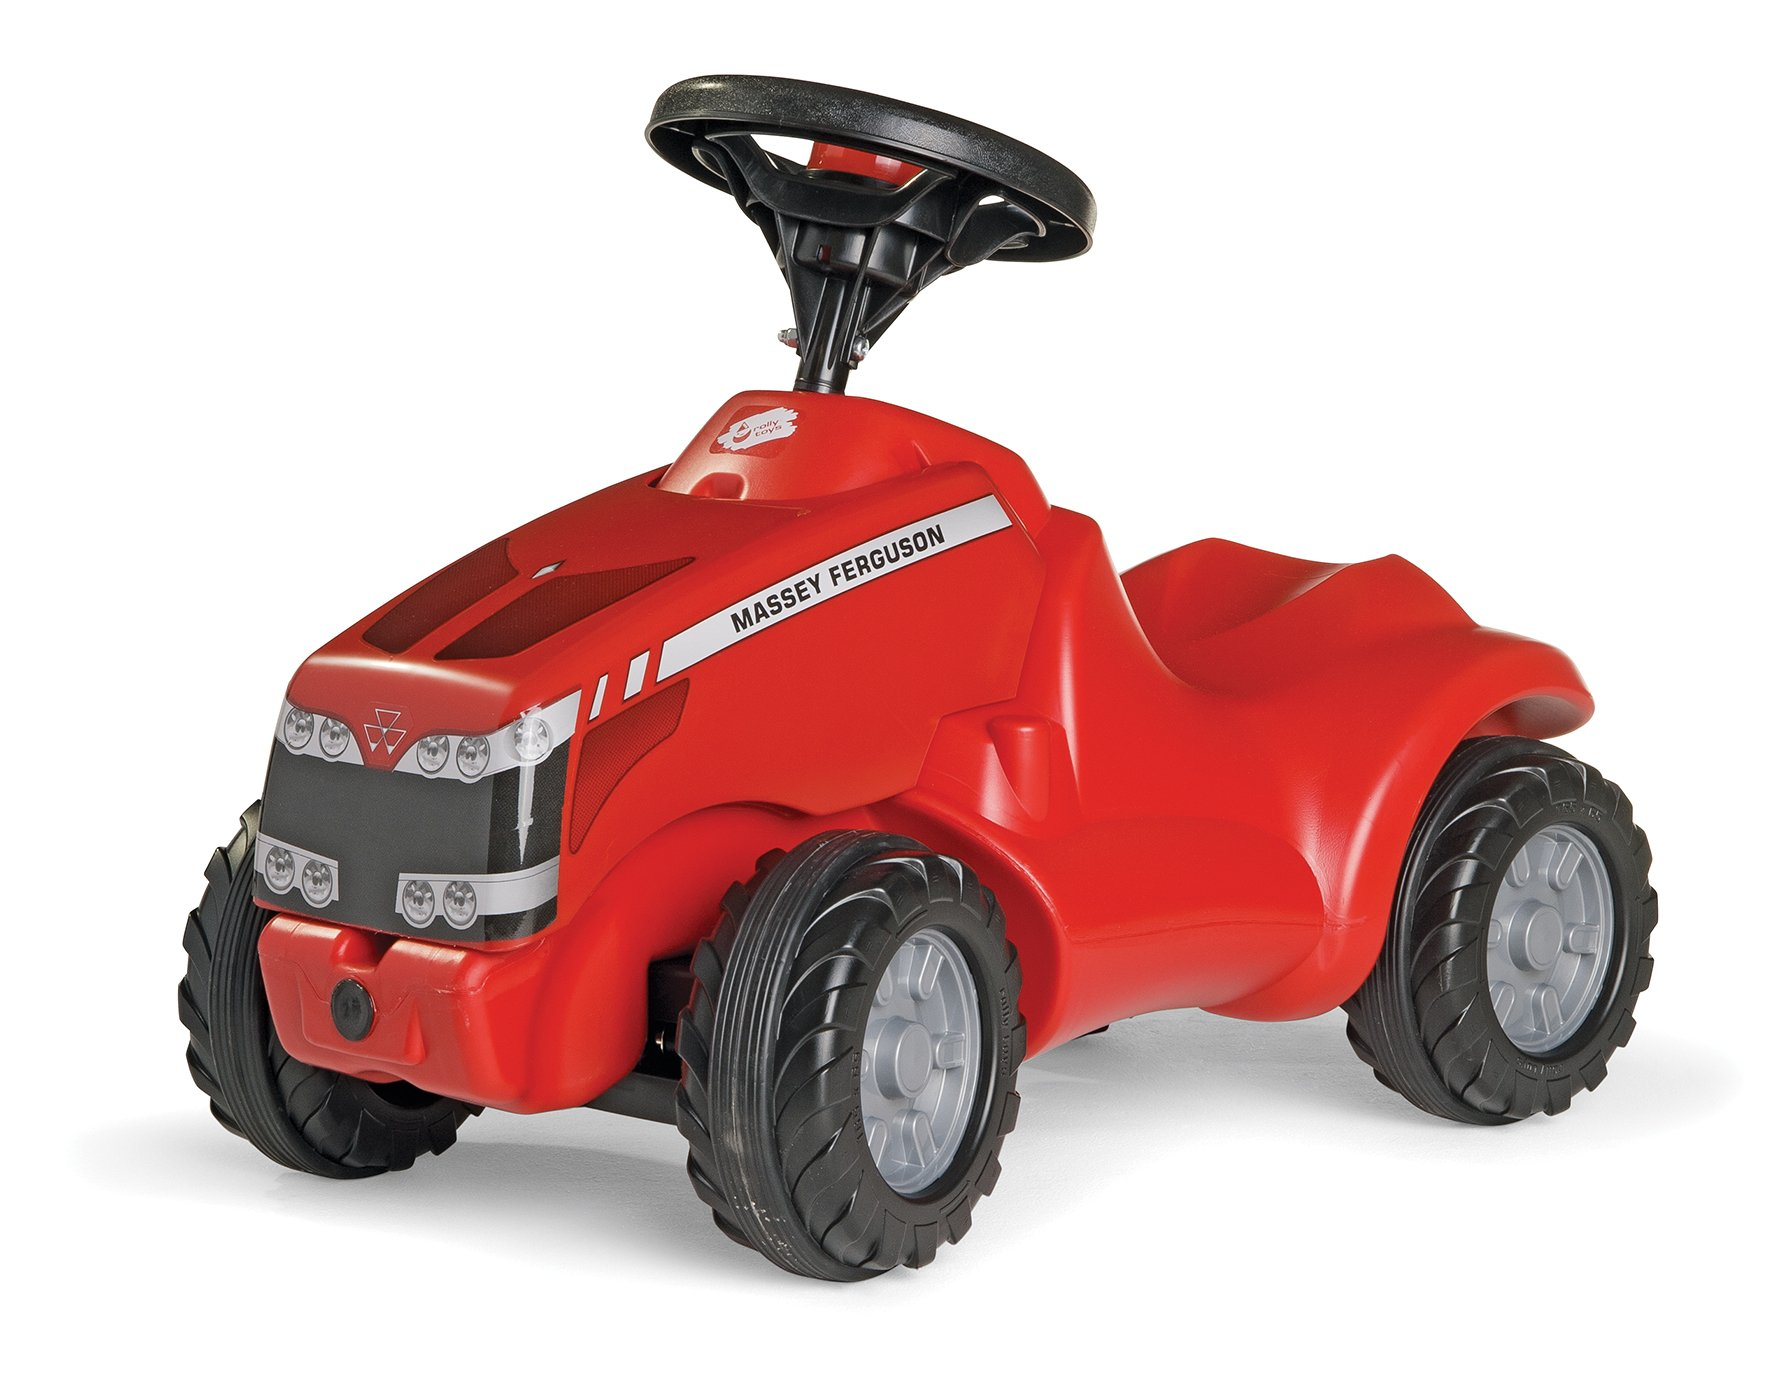 Rolly Toys Massey Ferguson MiniTrac Ride-On by rolly toys (Image #1)